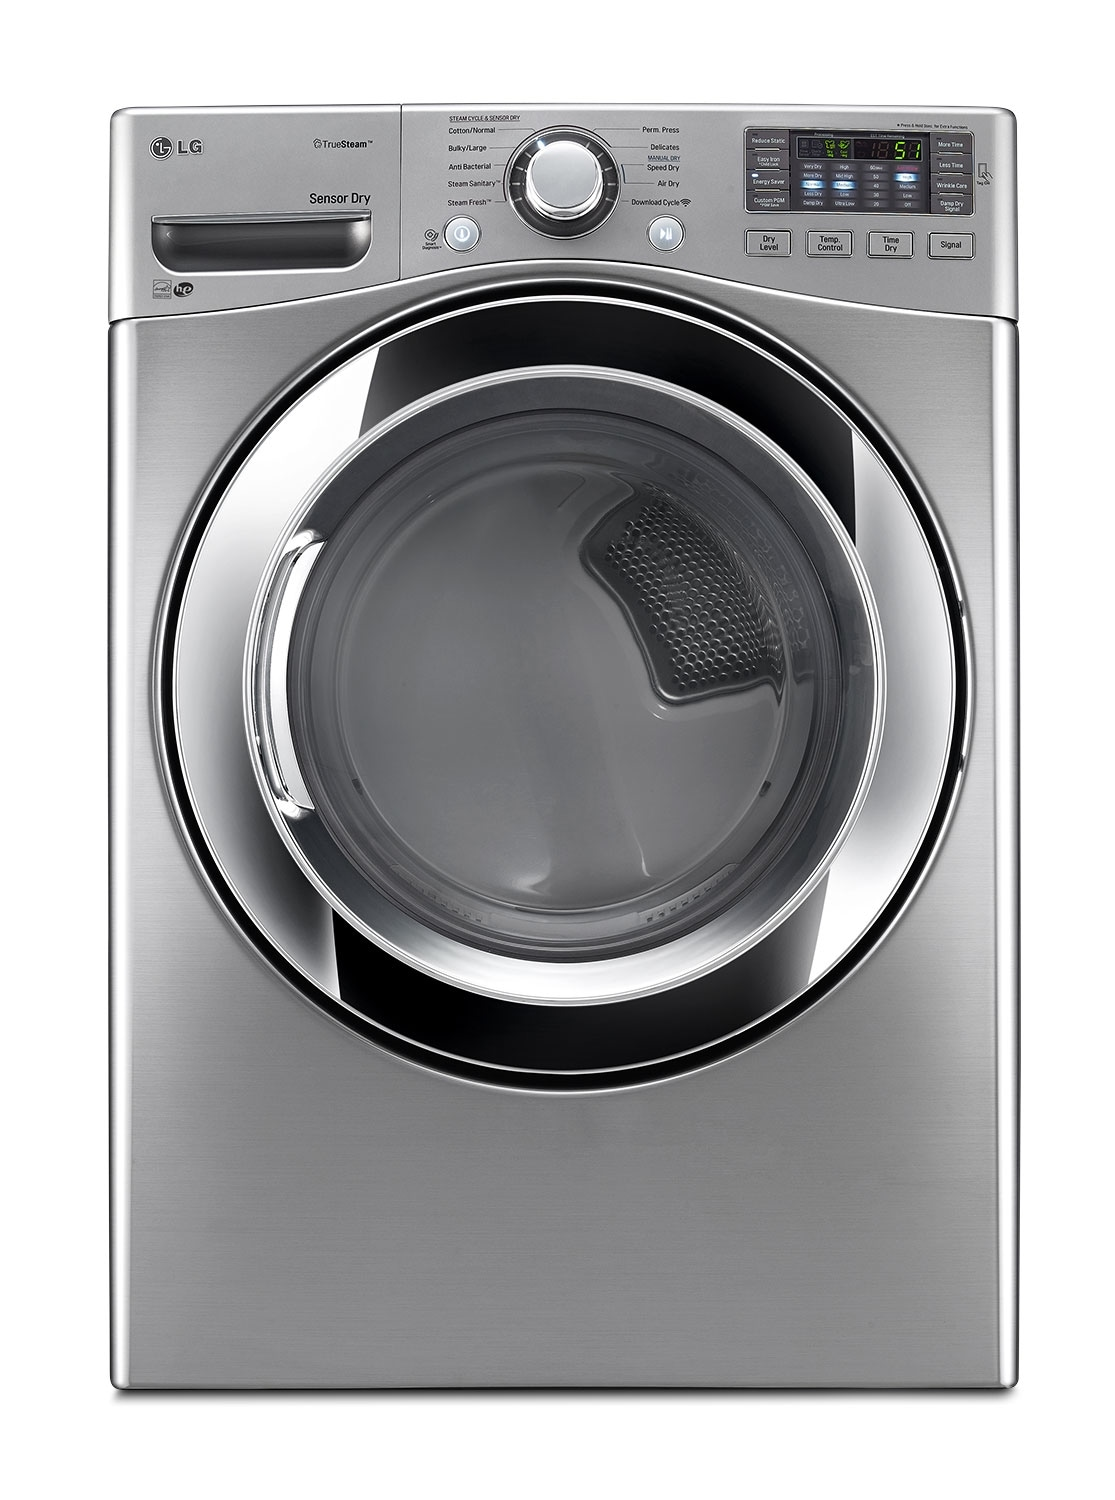 Washers and Dryers - LG Appliances Electric Dryer (7.4 Cu. Ft.)